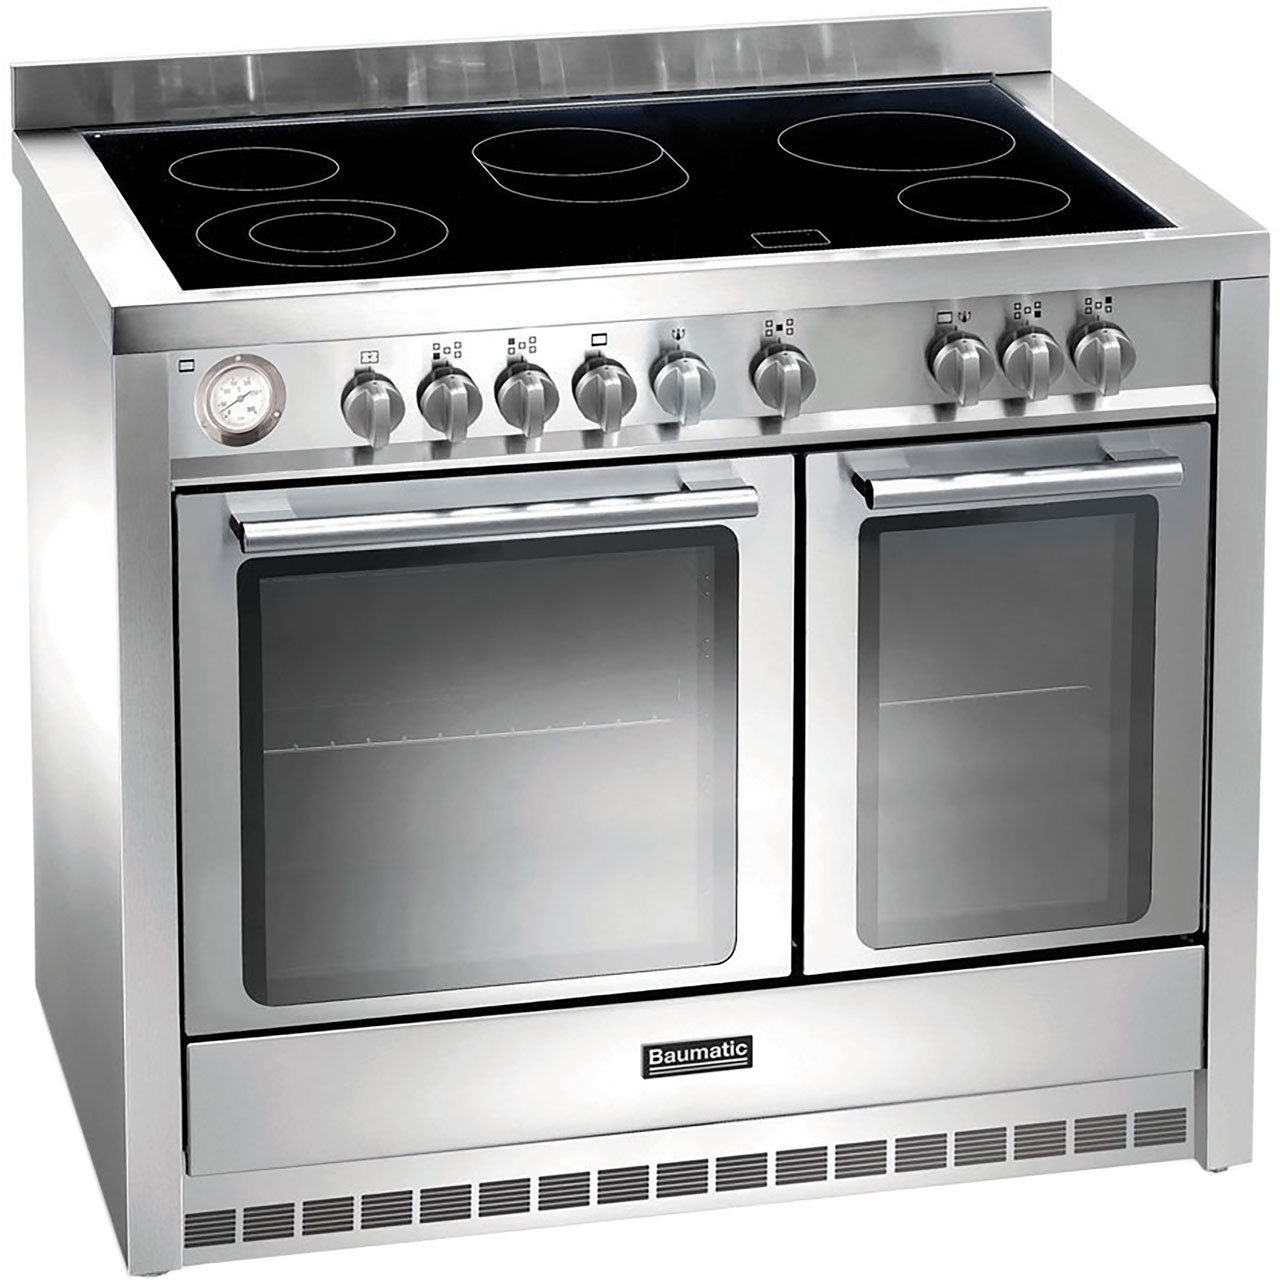 Baumatic BCE1025SS Free Standing Range Cooker in Stainless Steel